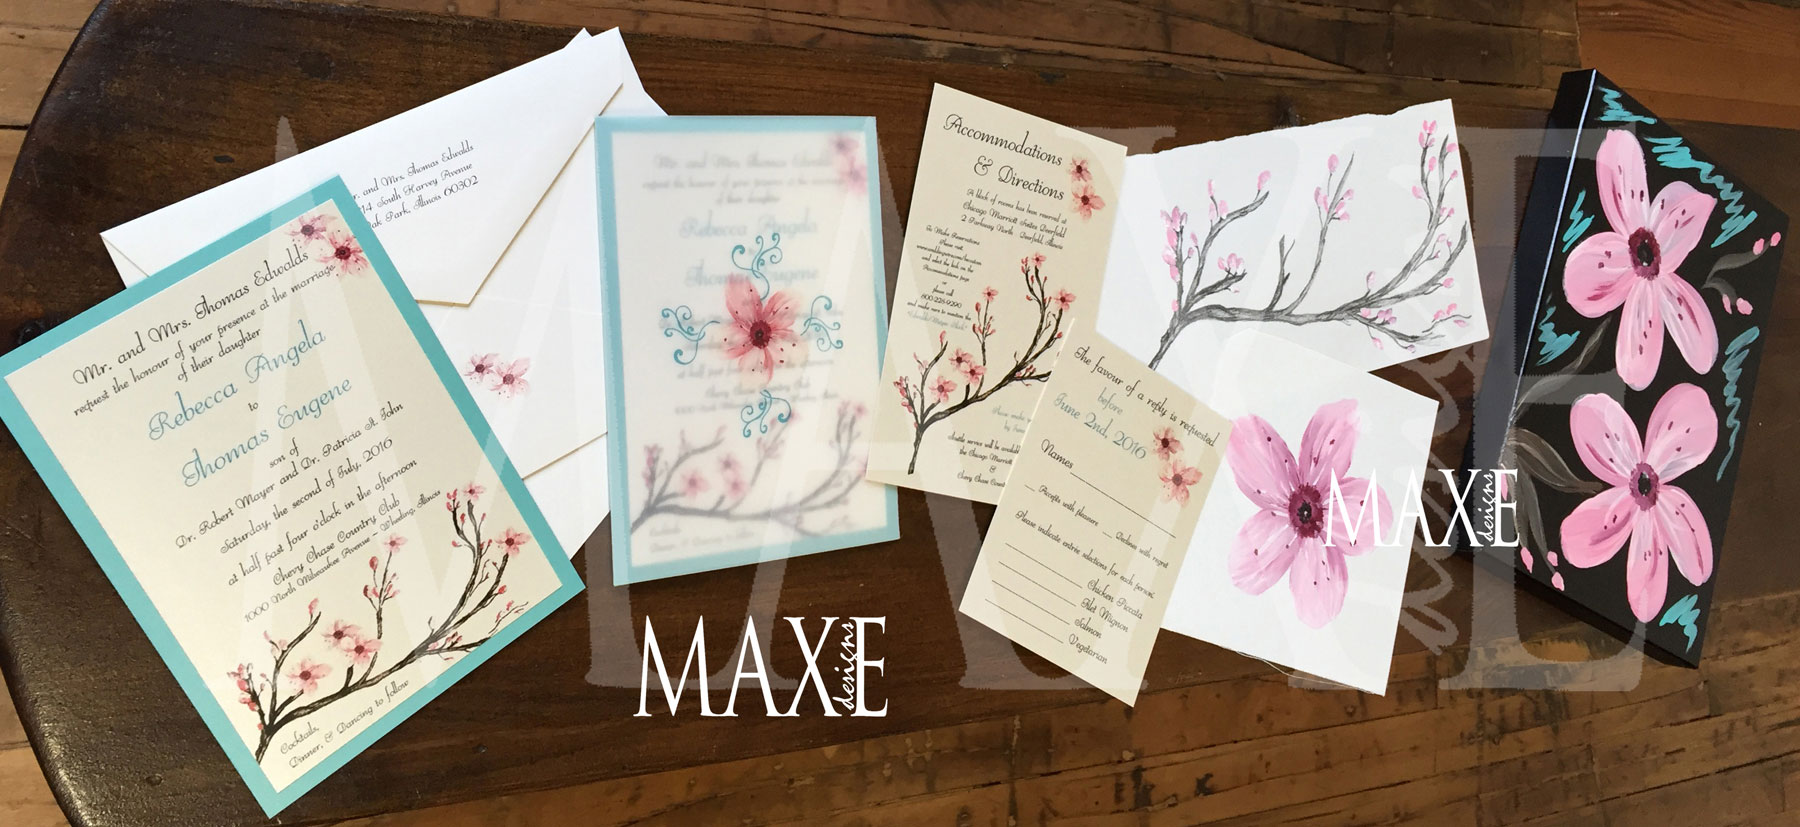 Maxe Designs LLC in Chicago, Illinois